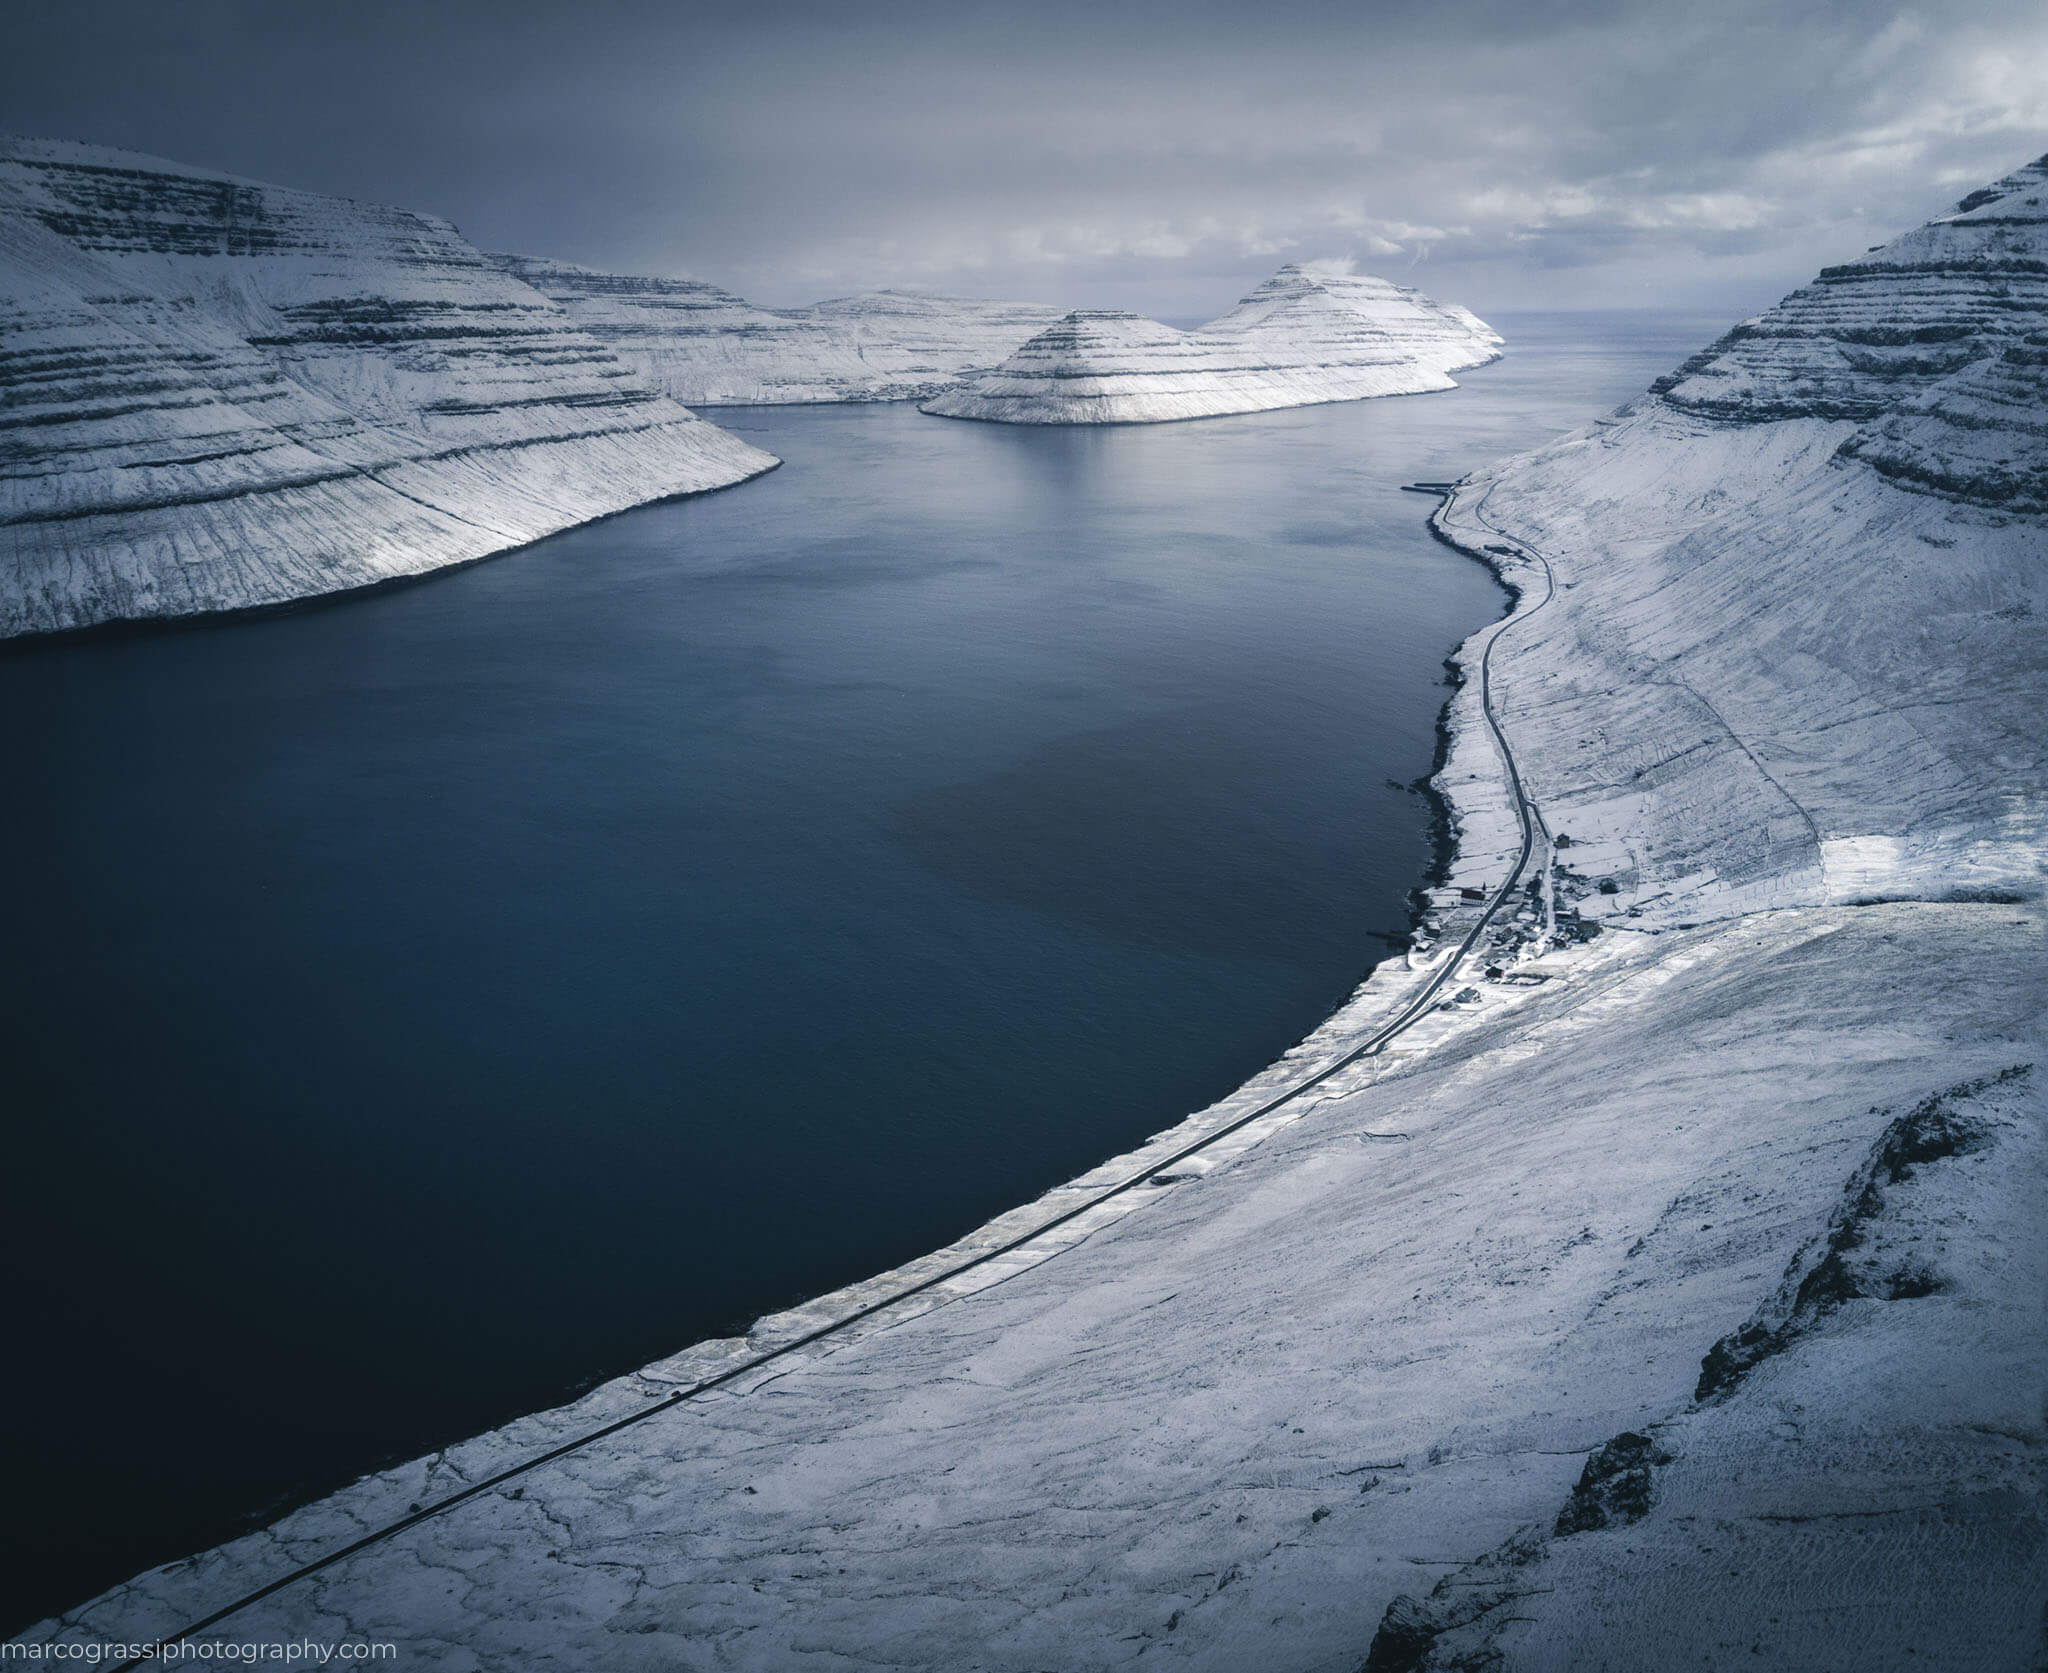 Faroe Islands with the snow